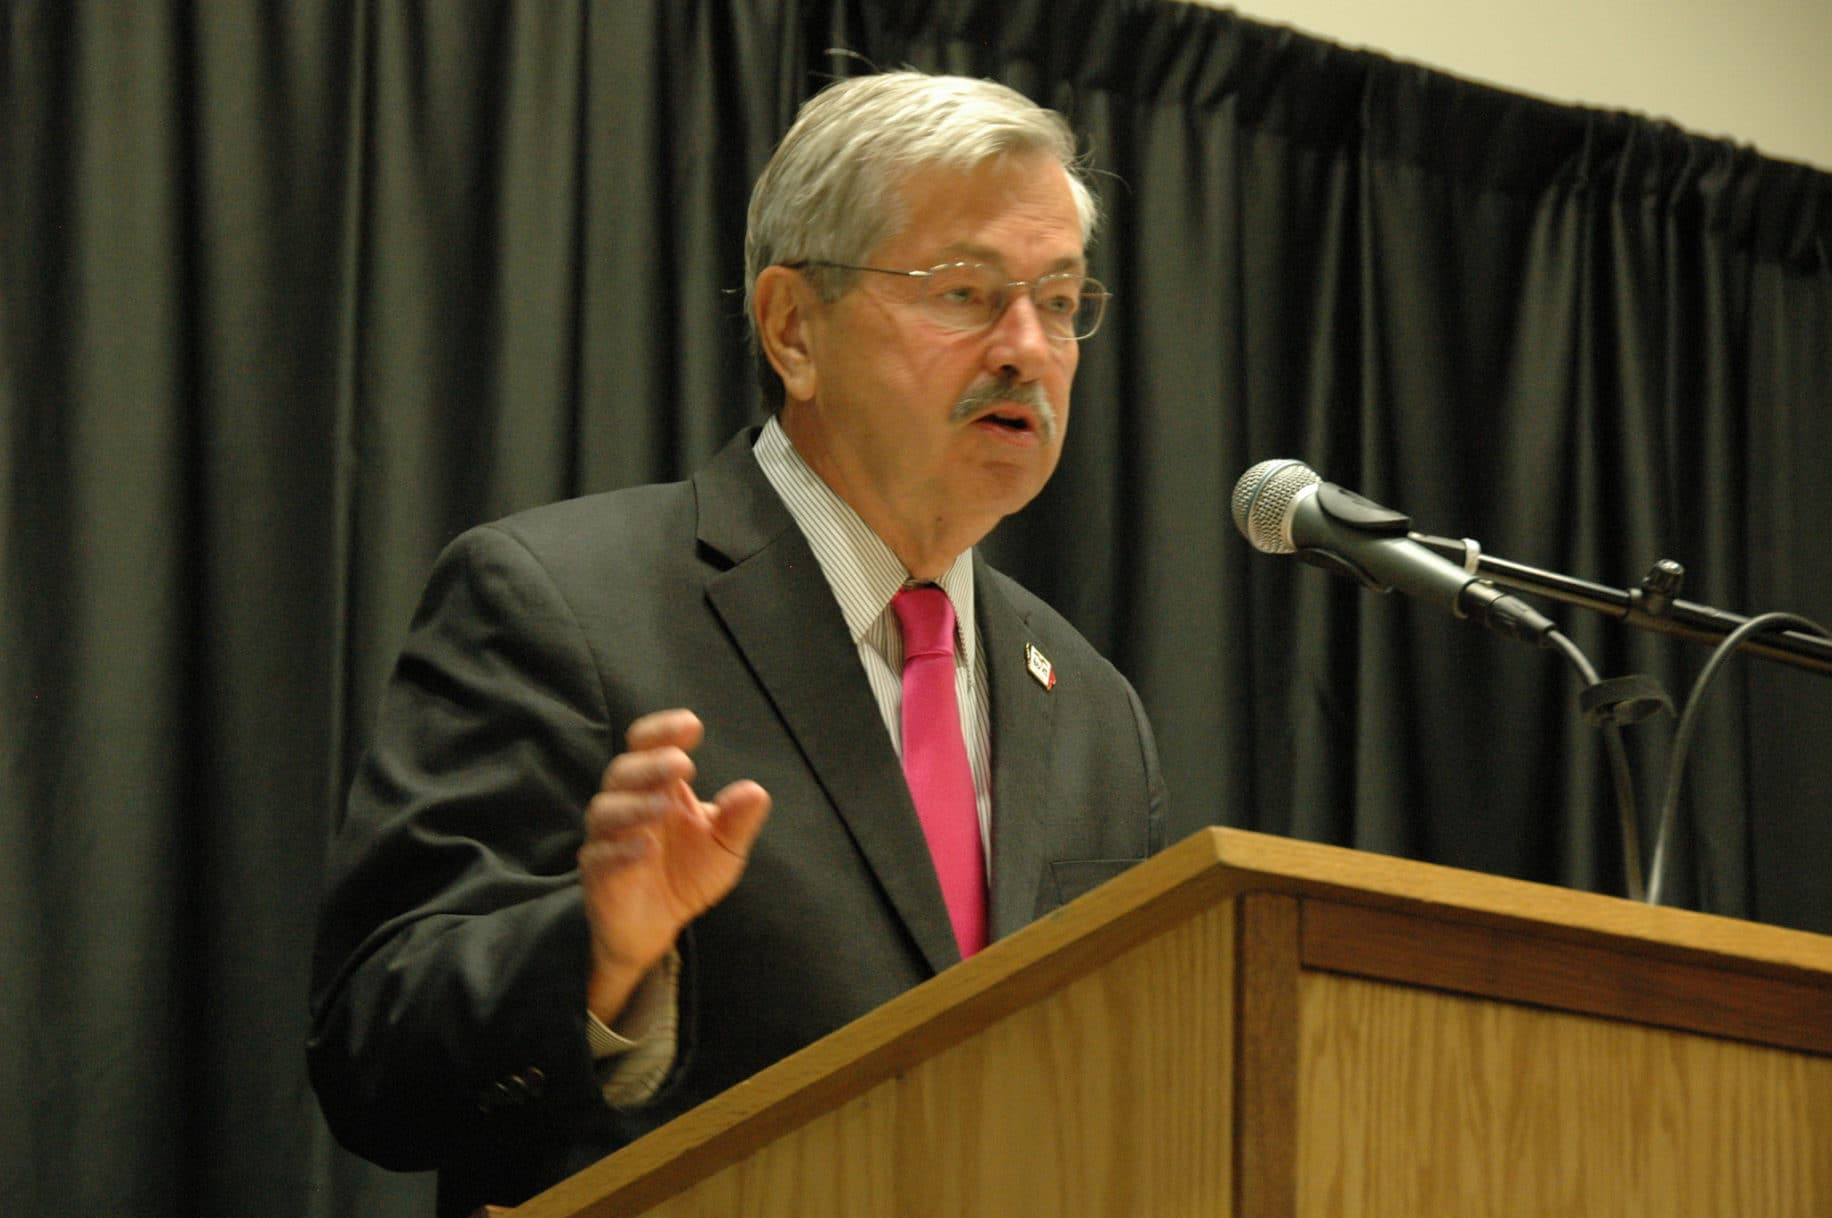 Iowa Gov. Terry Branstad addresses the Iowa Teachers & Administrators Leadership Symposium held on 8/4/14. Photo credit: Iowa Department of Education (Public Domain)